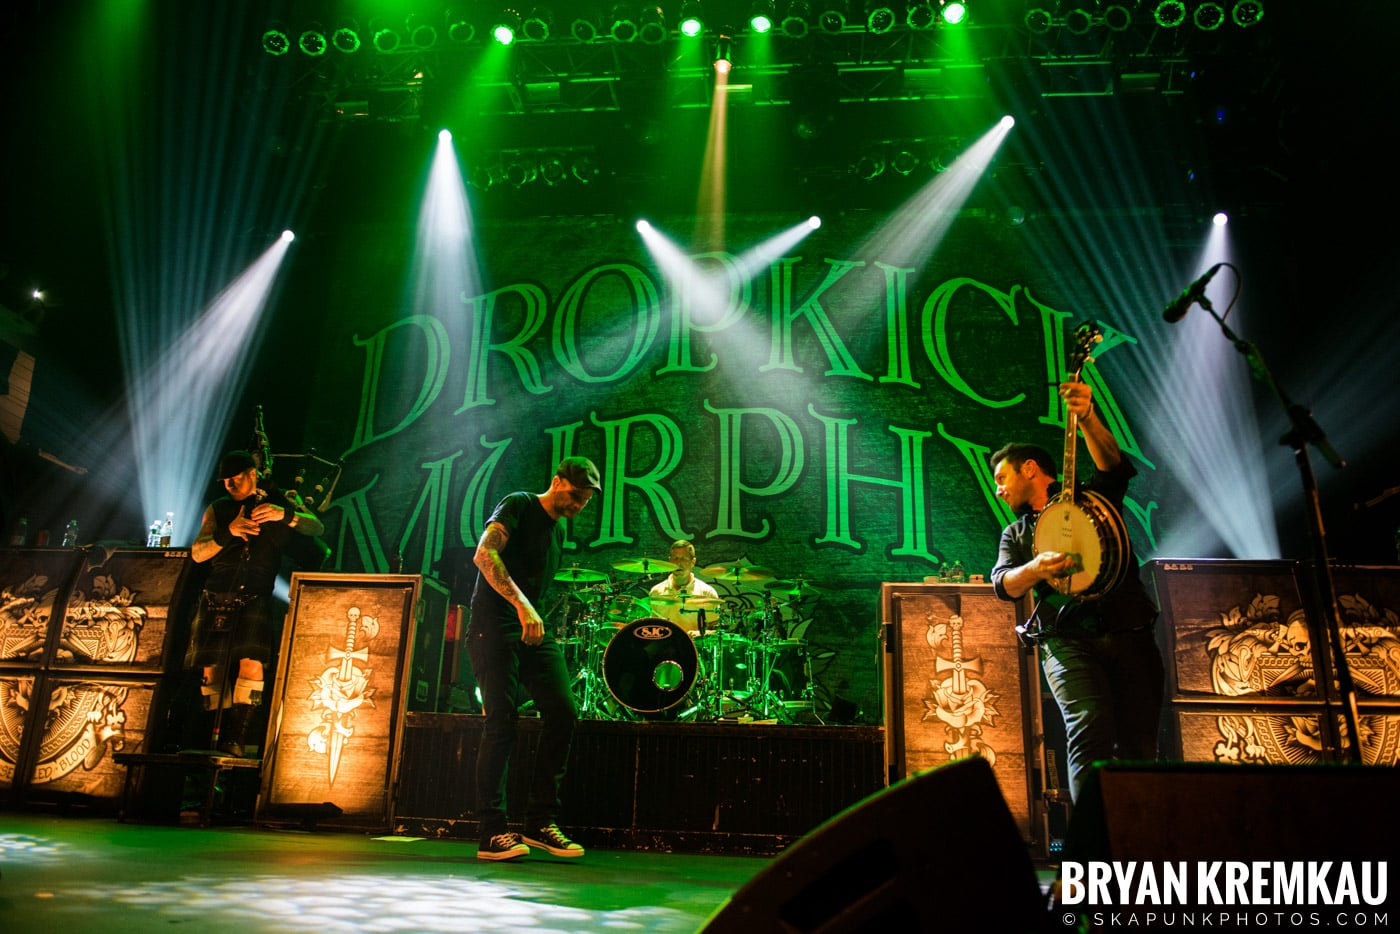 The Dropkick Murphys @ Terminal 5, NYC - 3.12.13 (25)